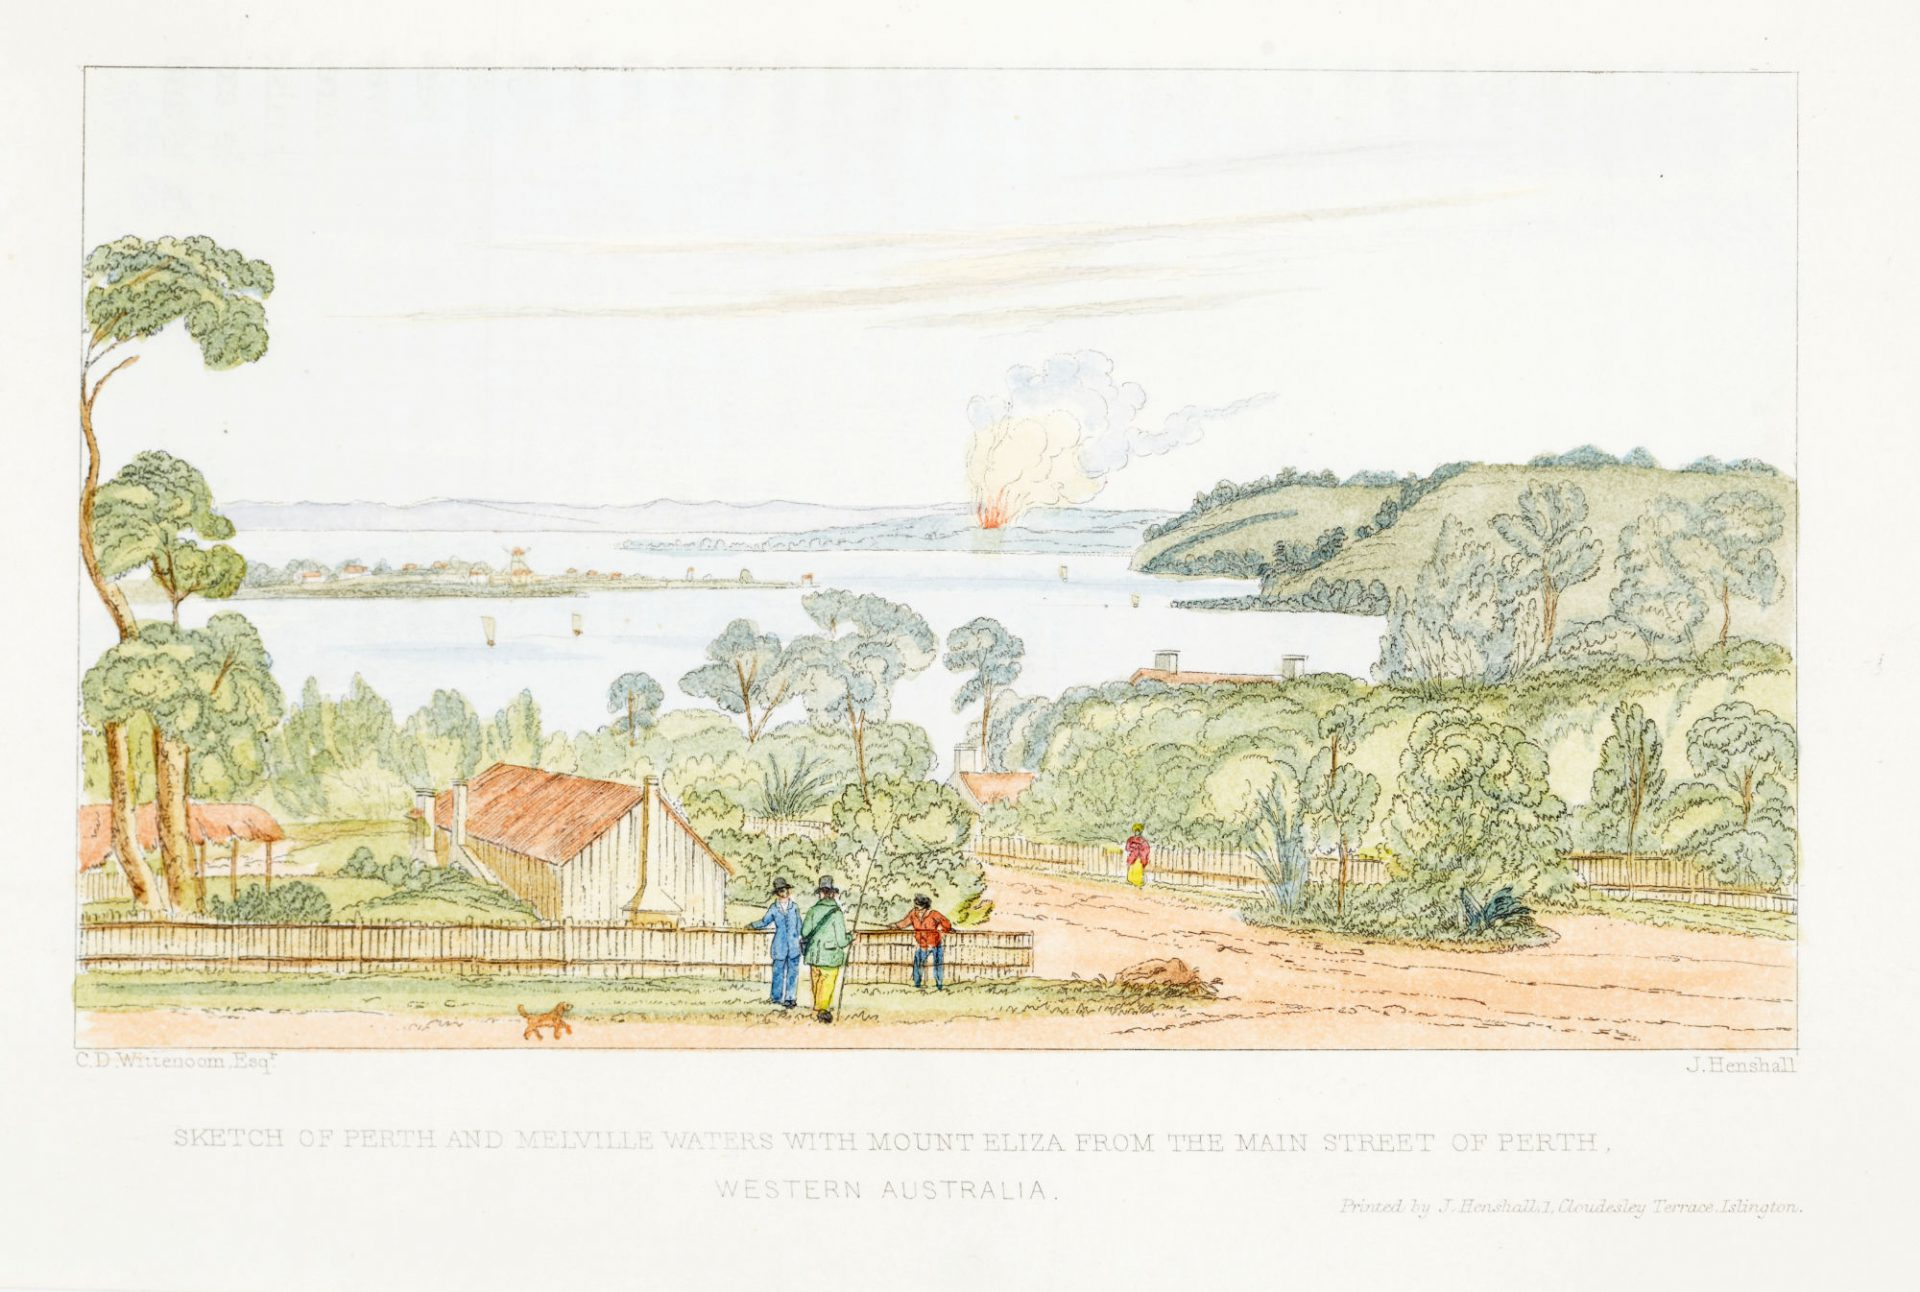 C.D. Wittenoom's sketch of Perth in 1839, as Miago would have known it.